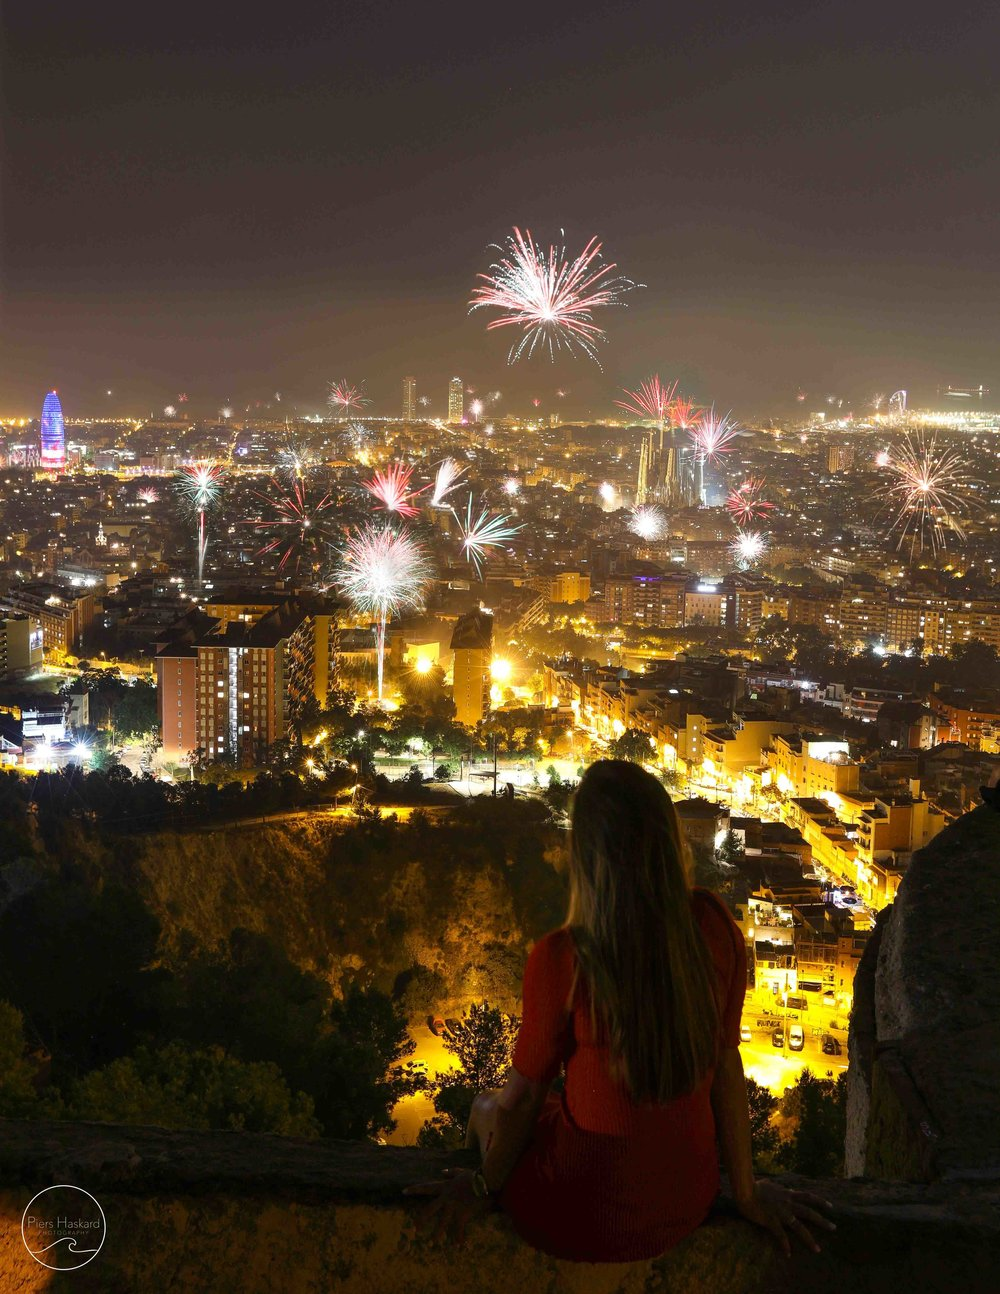 This happened later that evening. Turns out we stumbled upon the best seat in the house to watch the St. John's celebrations. Fireworks over the Segrada Familia and in every other corner of the city.